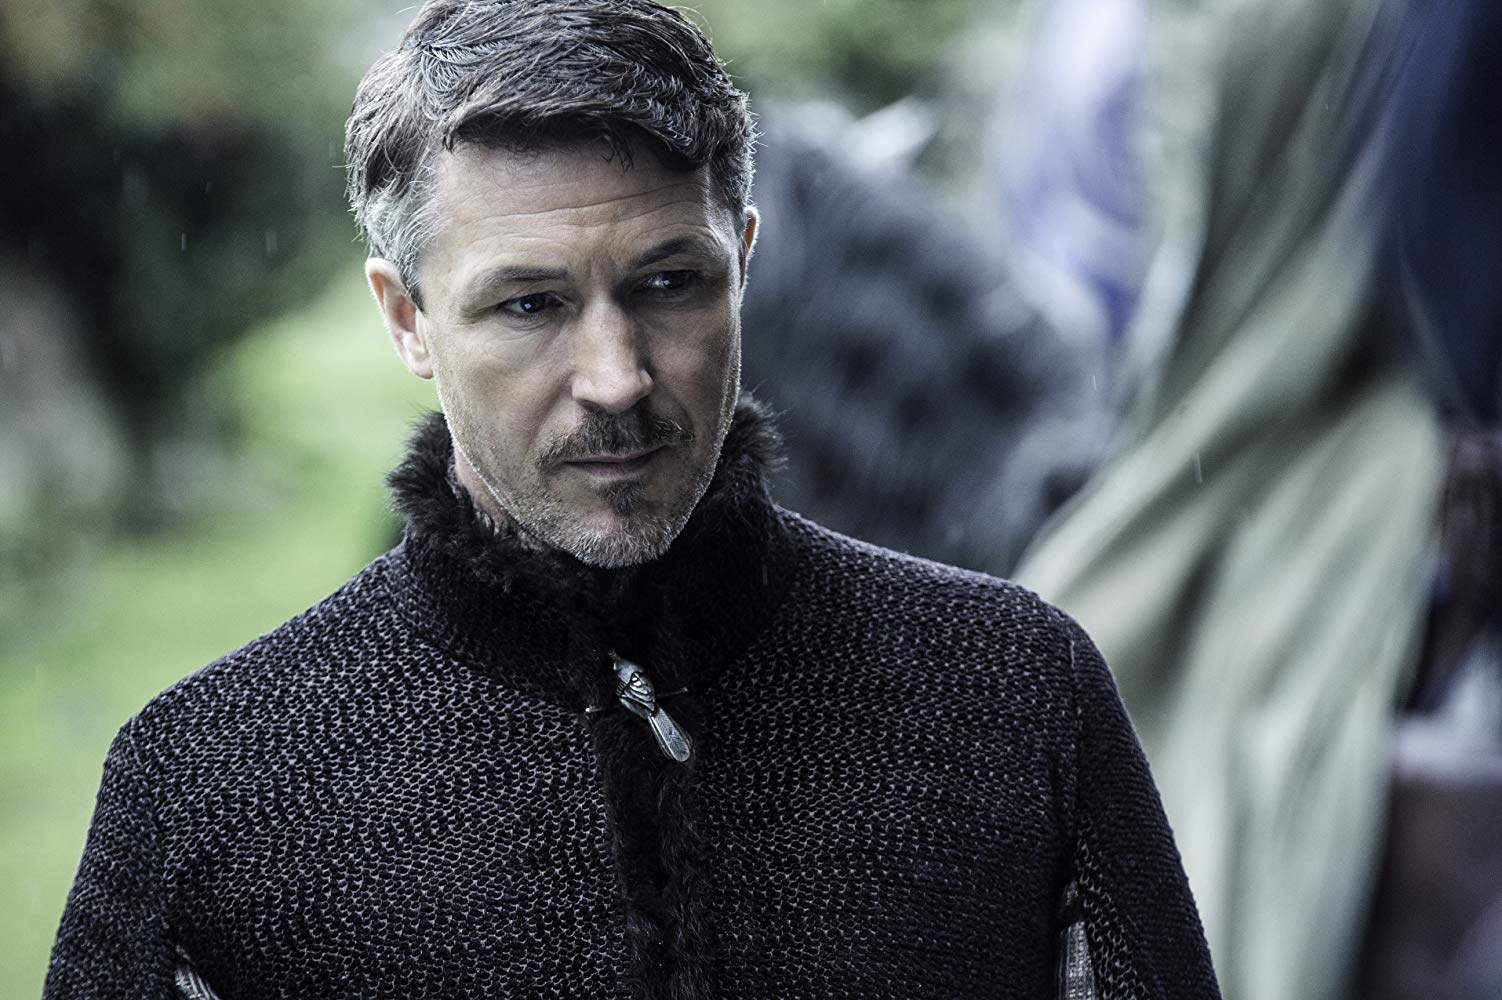 Aidan Gillen as Petyr Baelish in 'Game of Thrones'. (Source: IMDB)